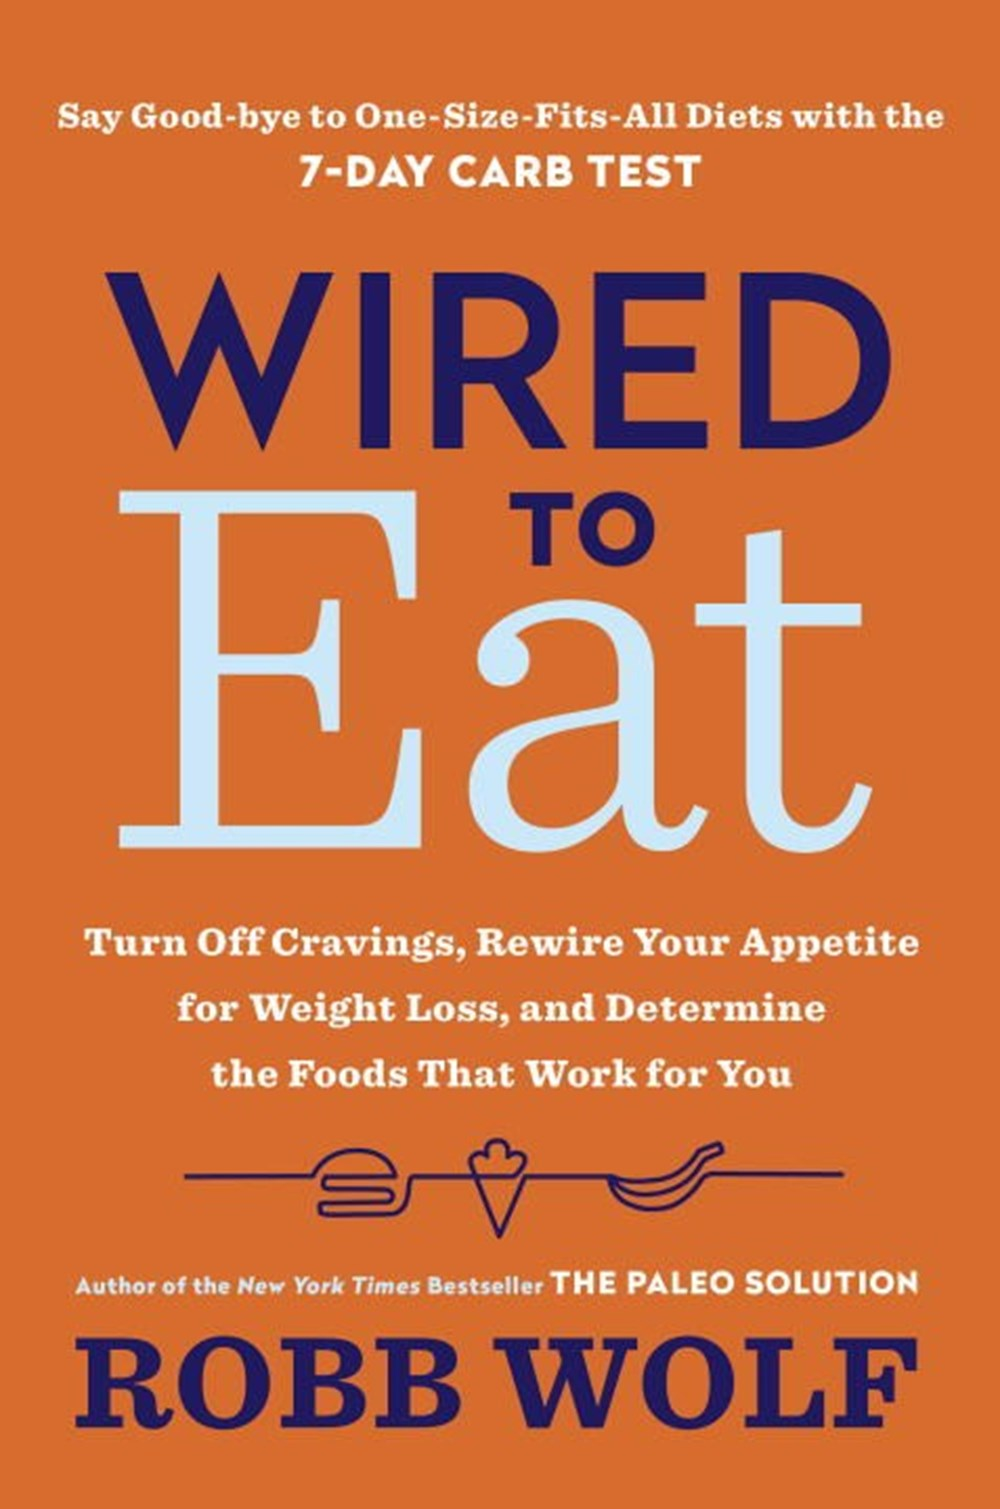 Wired to Eat Turn Off Cravings, Rewire Your Appetite for Weight Loss, and Determine the Foods That W